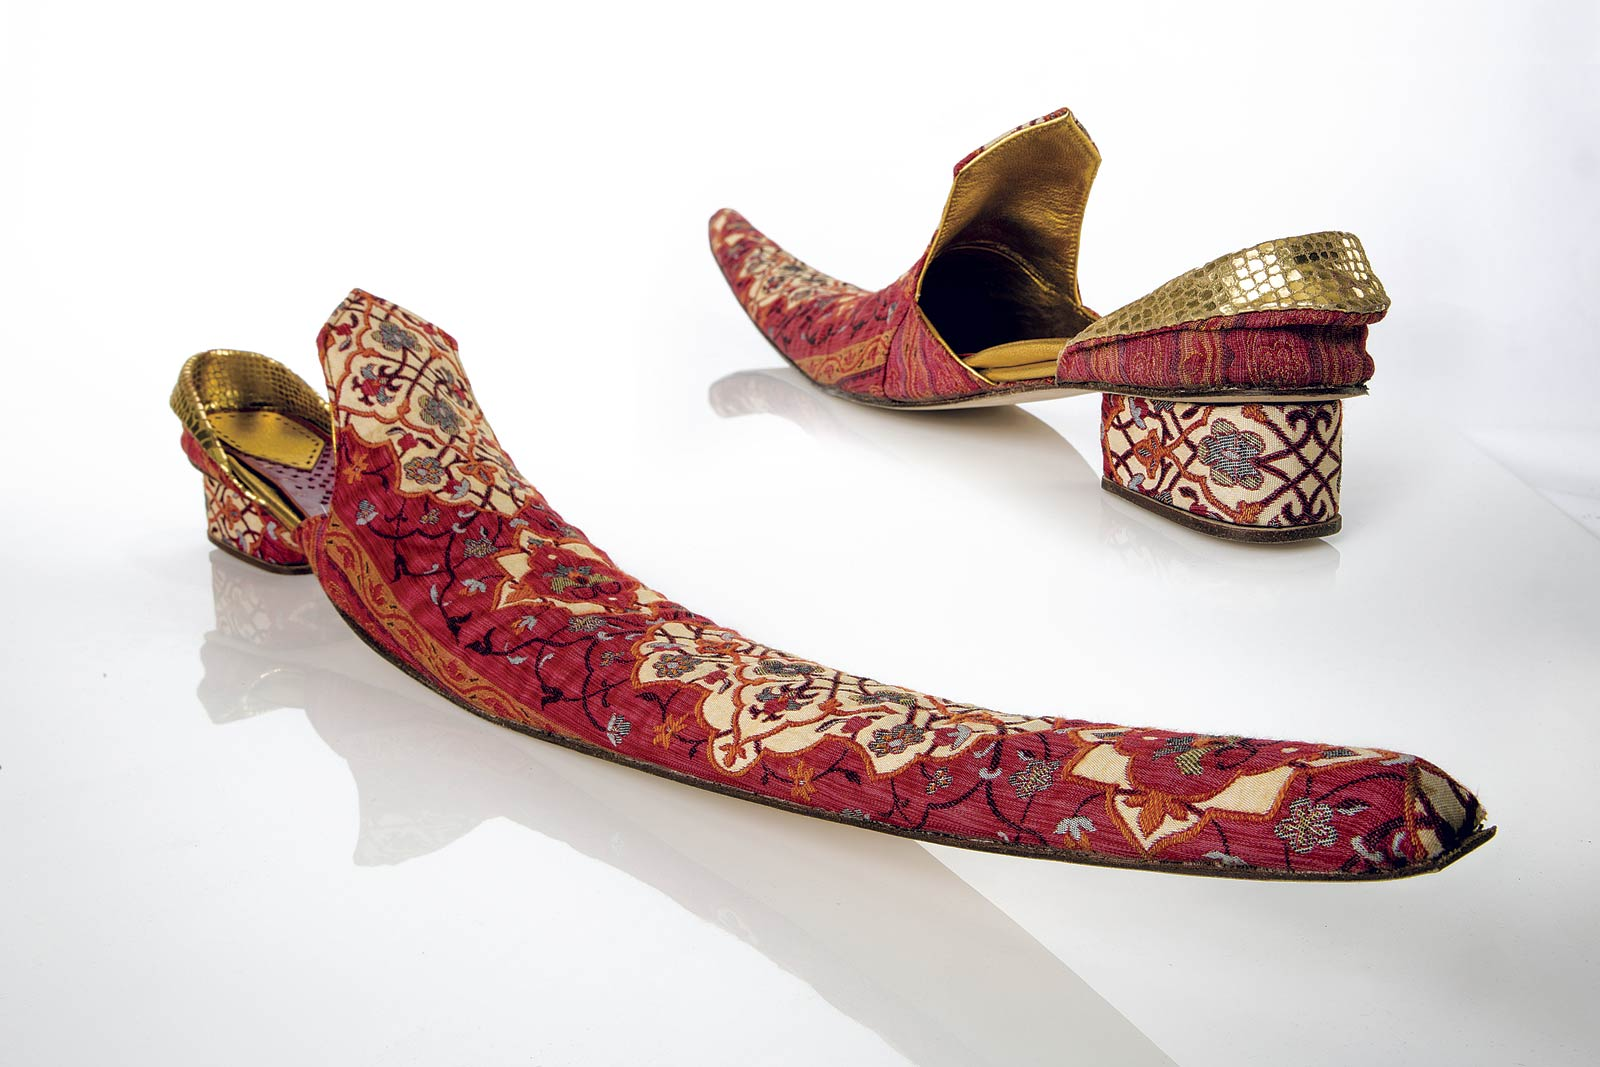 SHOE of woven textile, vegetable-tanned leather, wood, hand-brogued leather, linen, cheesecloth, leather, nails, natural glue, 2014.